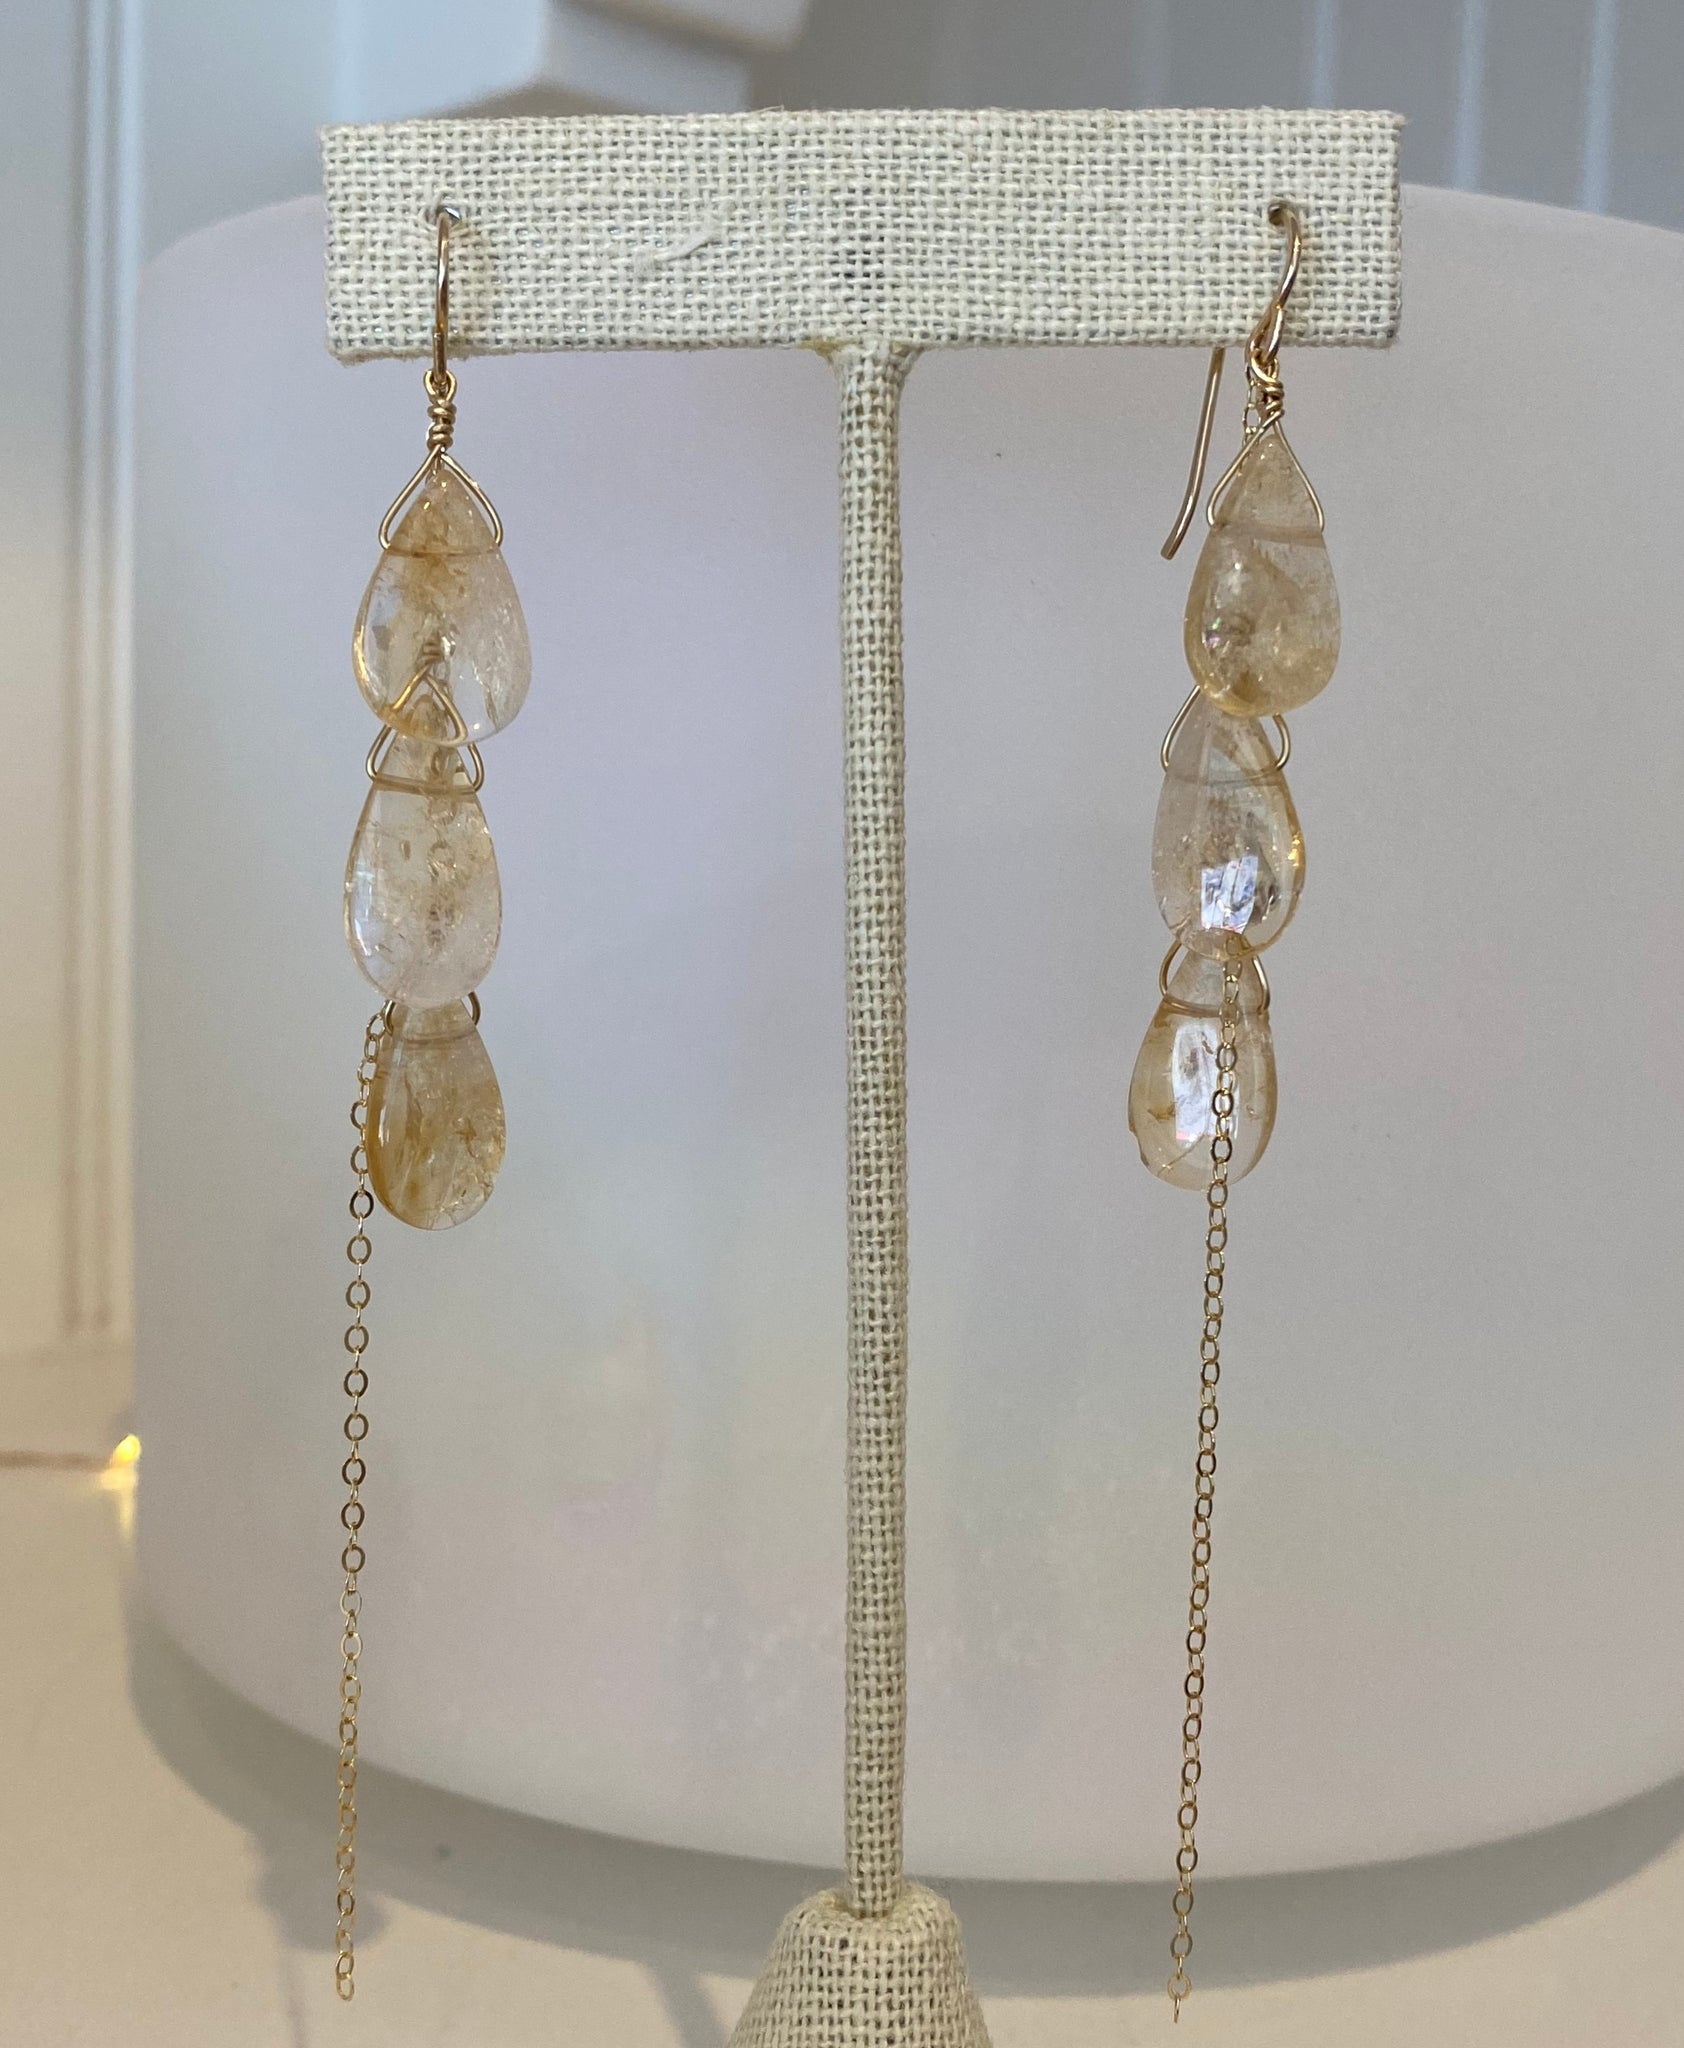 Sunkiss Citrine Earrings